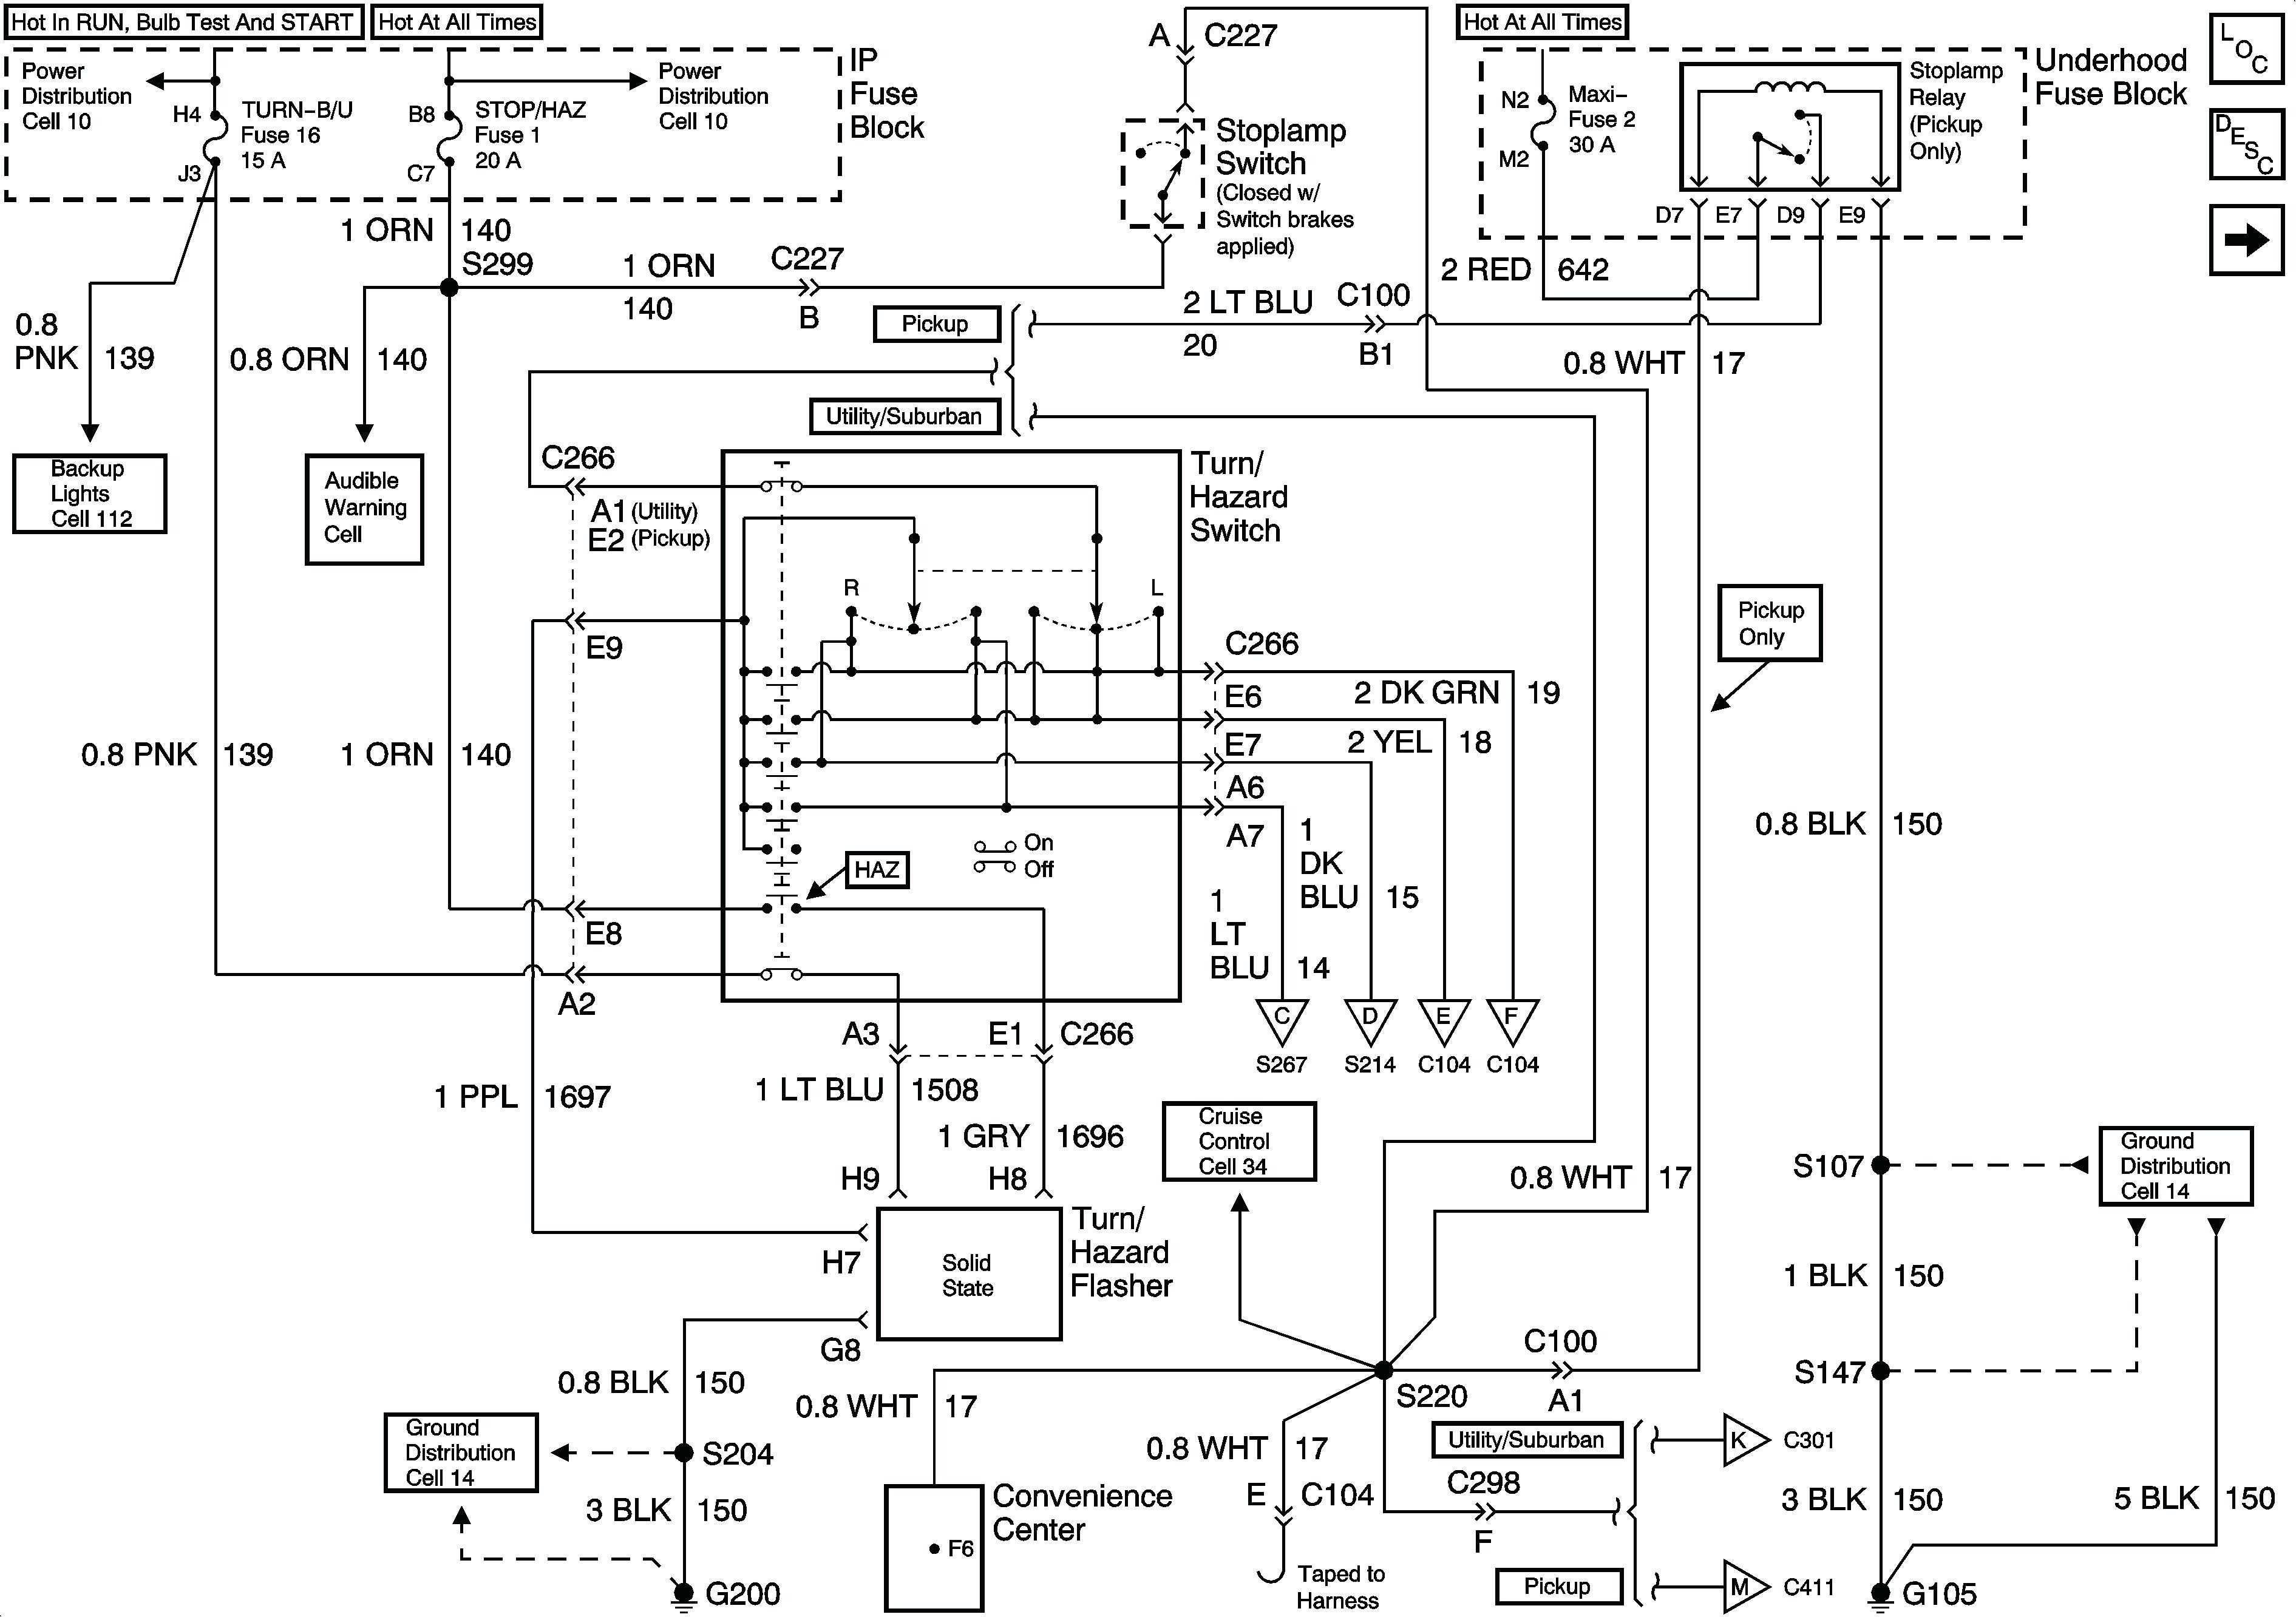 xm connector wiring diagram 2003 accord trusted schematic diagrams u2022 rh sarome co